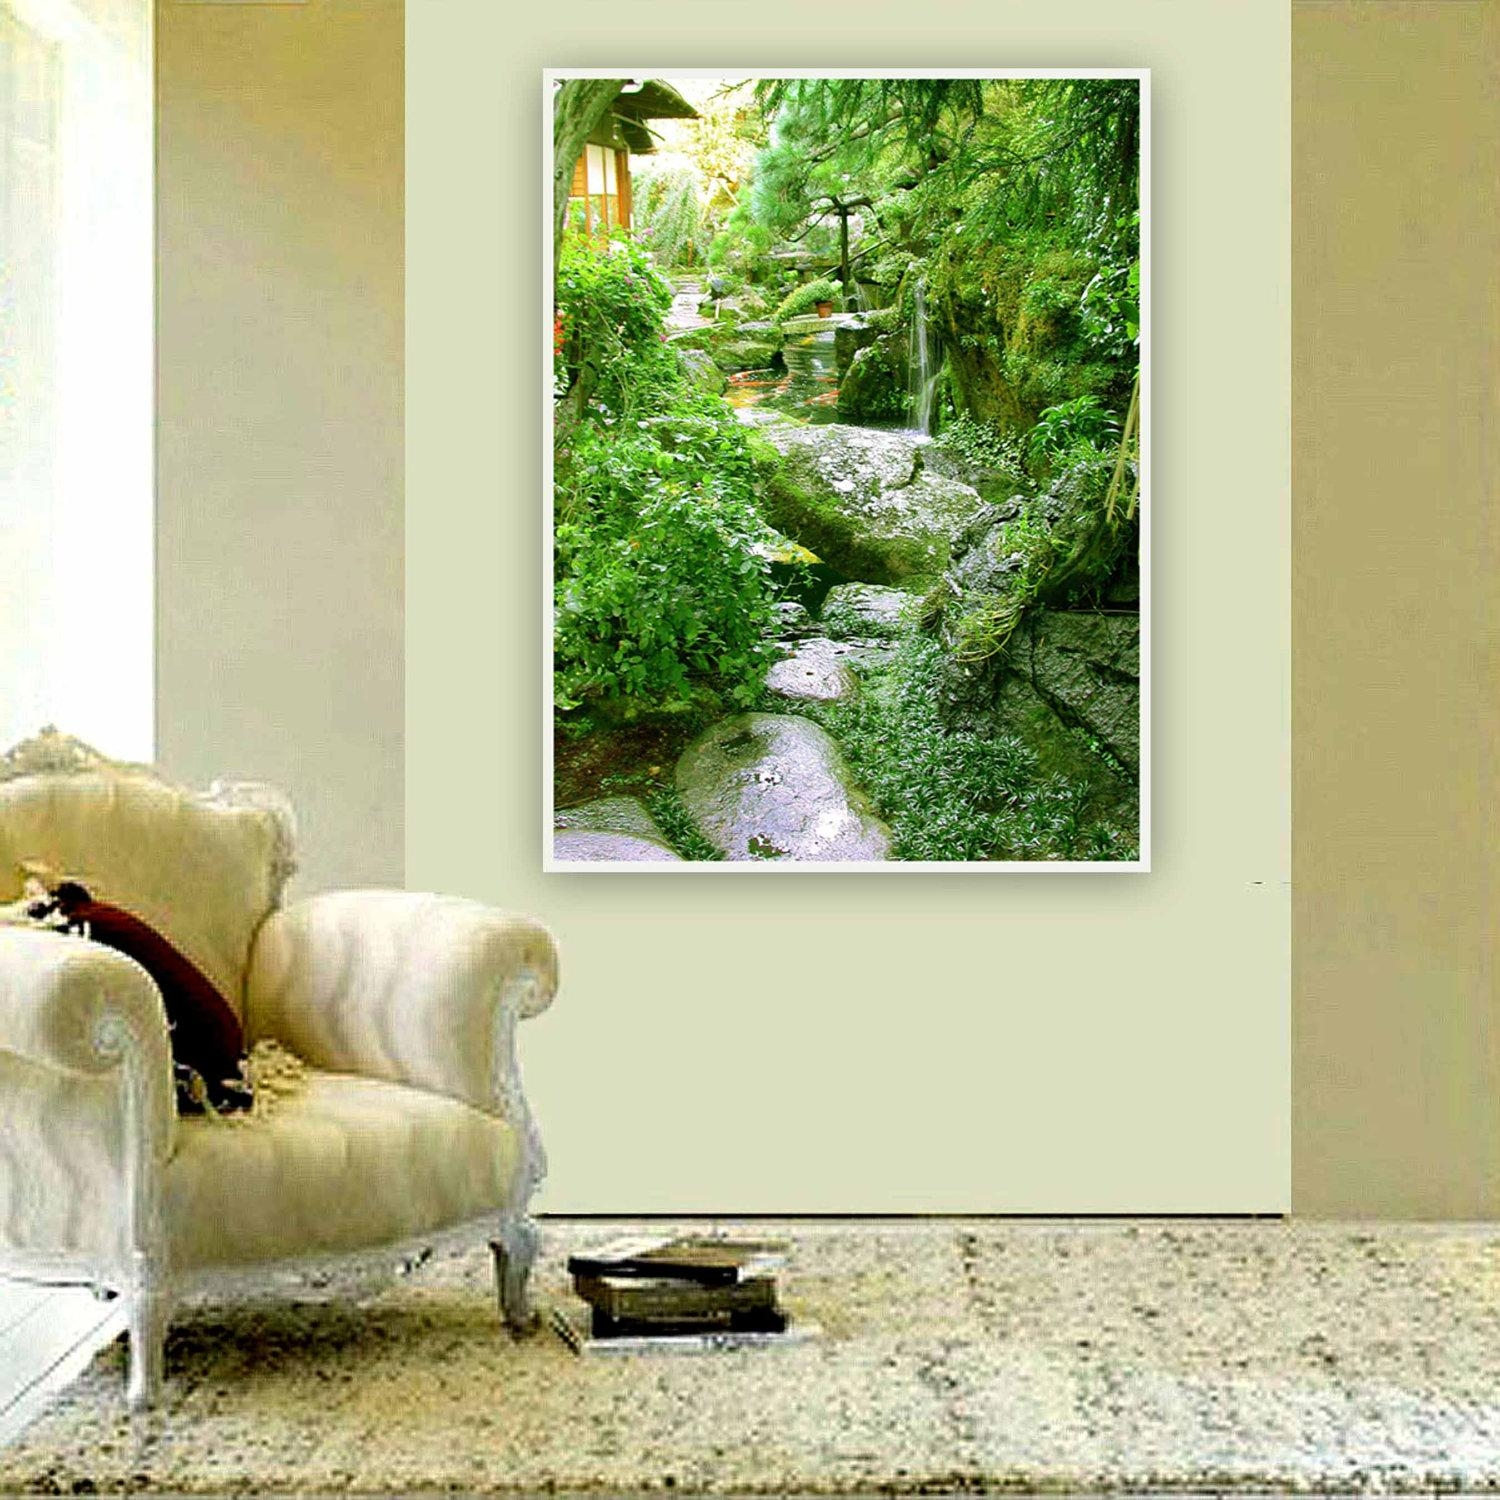 Photography 8 X 10 Modern Wall Art Decor Feng Shui Within Feng Shui Wall Art (Image 17 of 20)